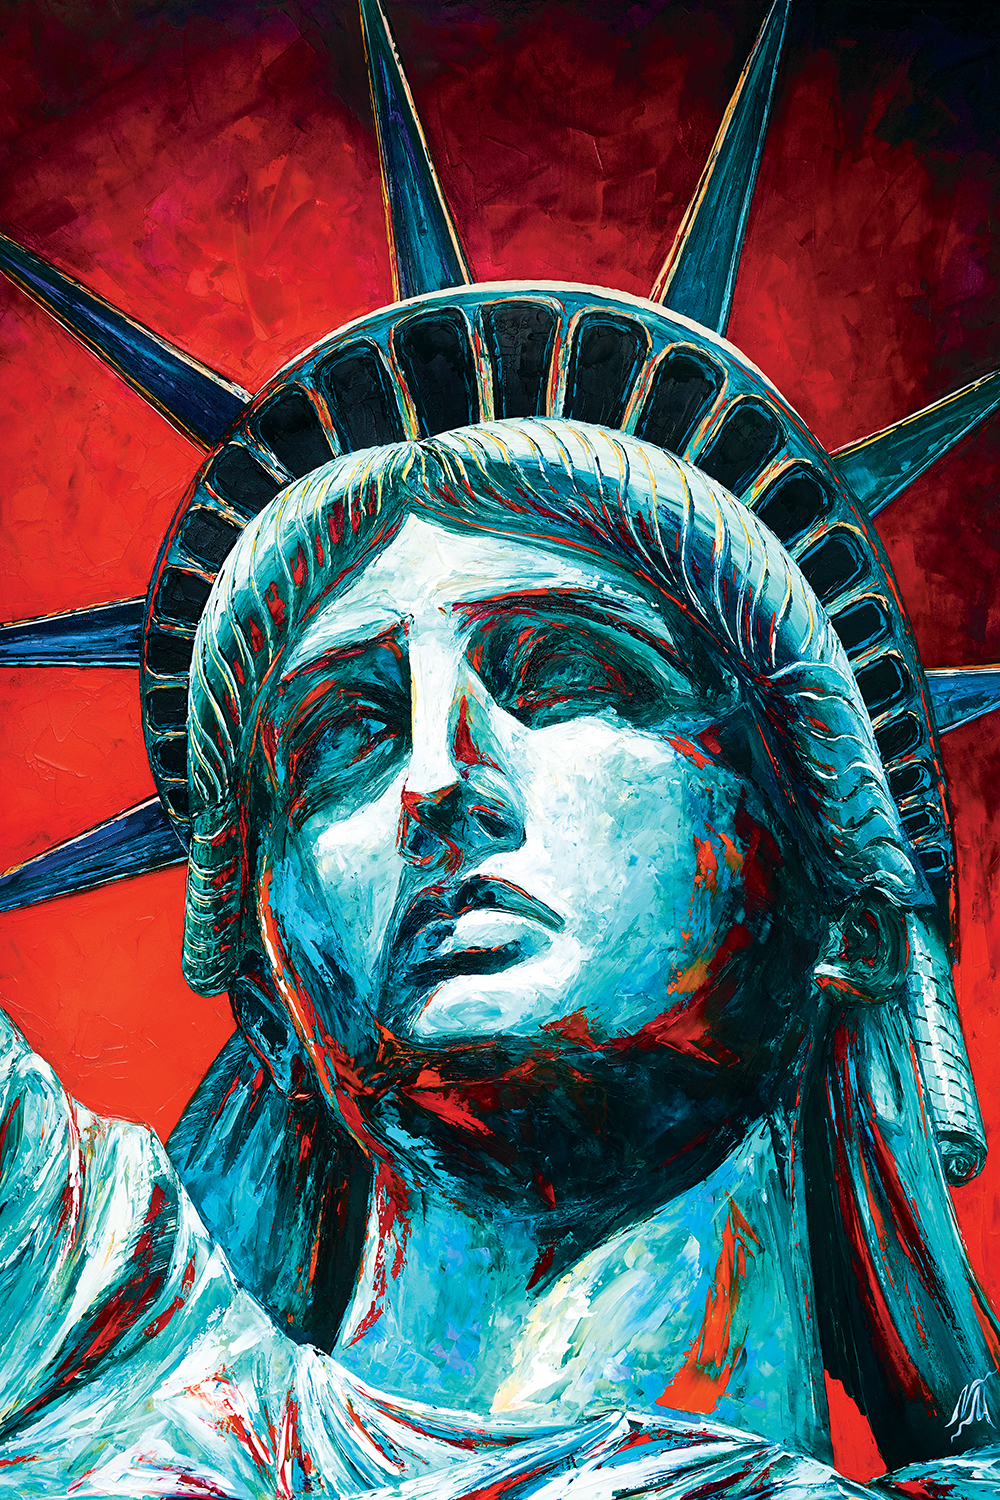 a close up portrait of the statue of liberty's face with a bold red background